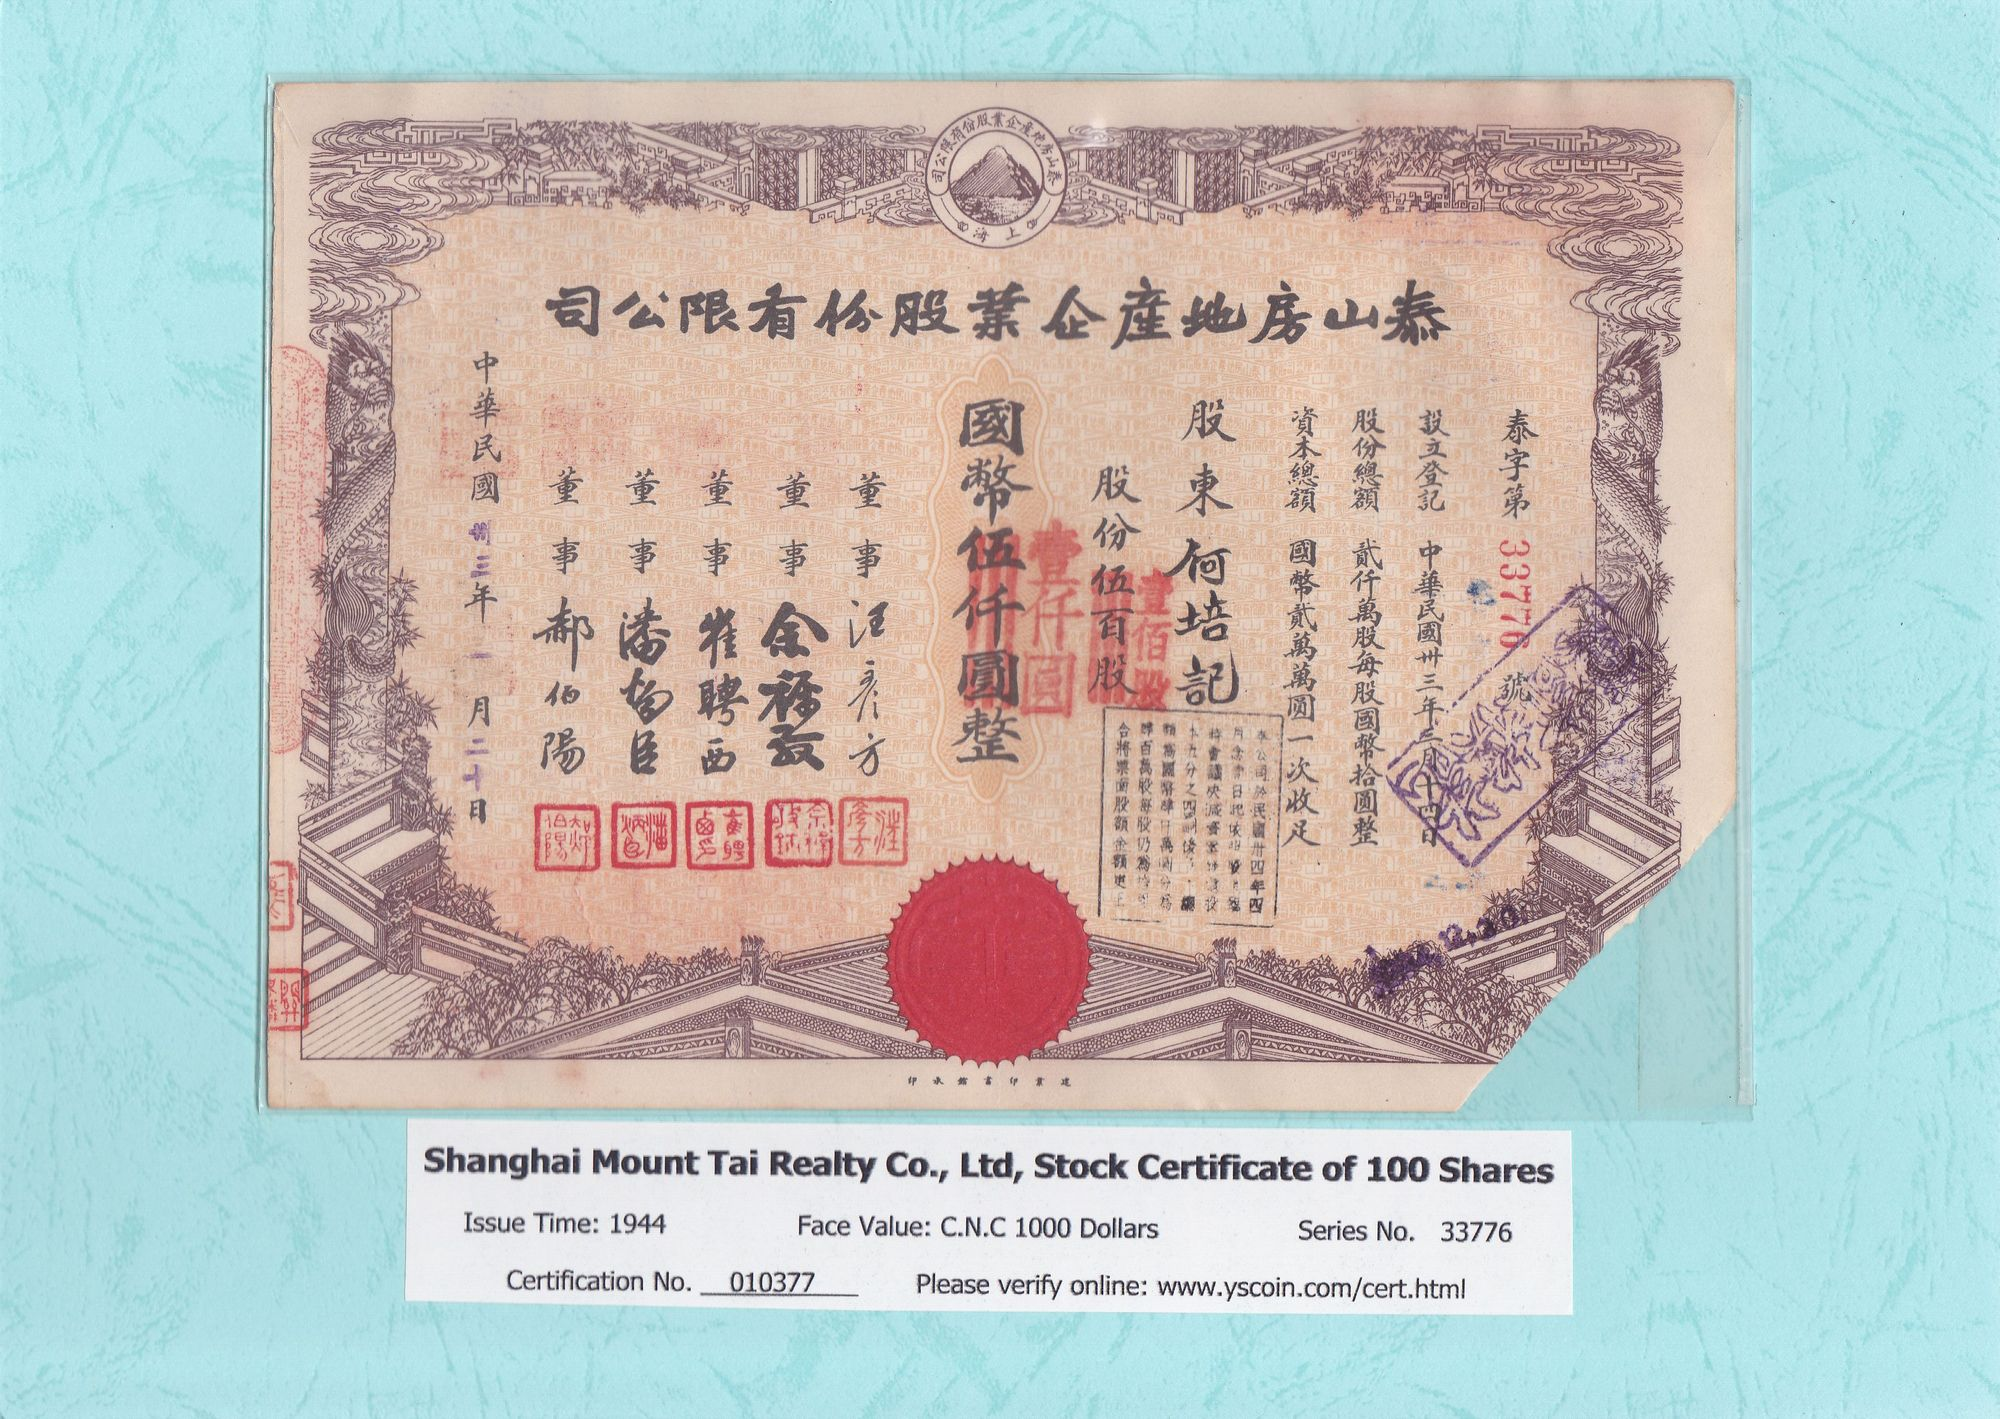 010377, Shanghai Mount Tai Realty Co., Ltd, Stock Certificate of 100 Shares